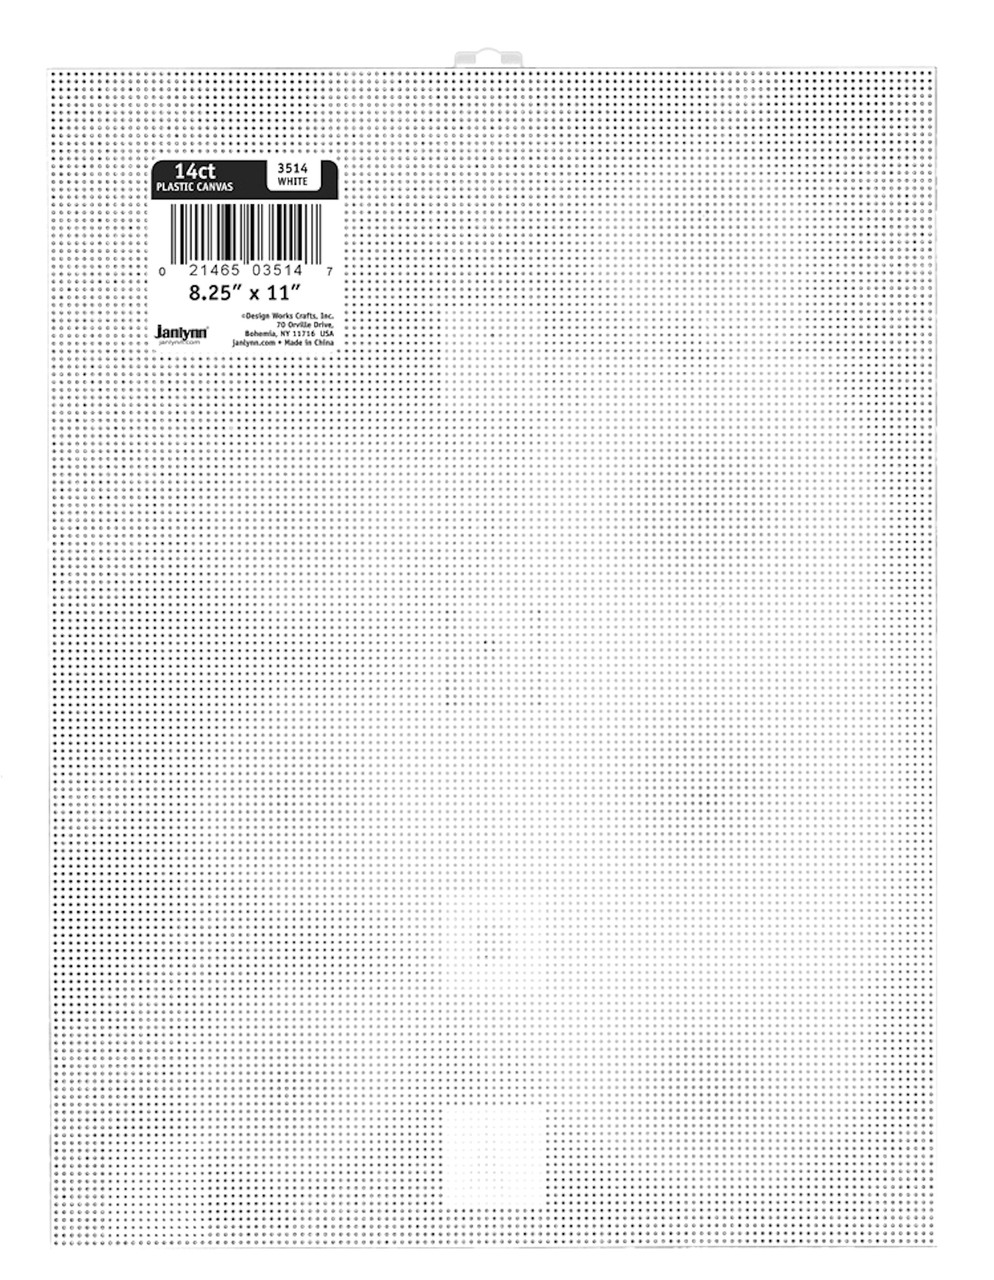 Janlynn - White Plastic Canvas 14 Count 8.25 x 11 inches